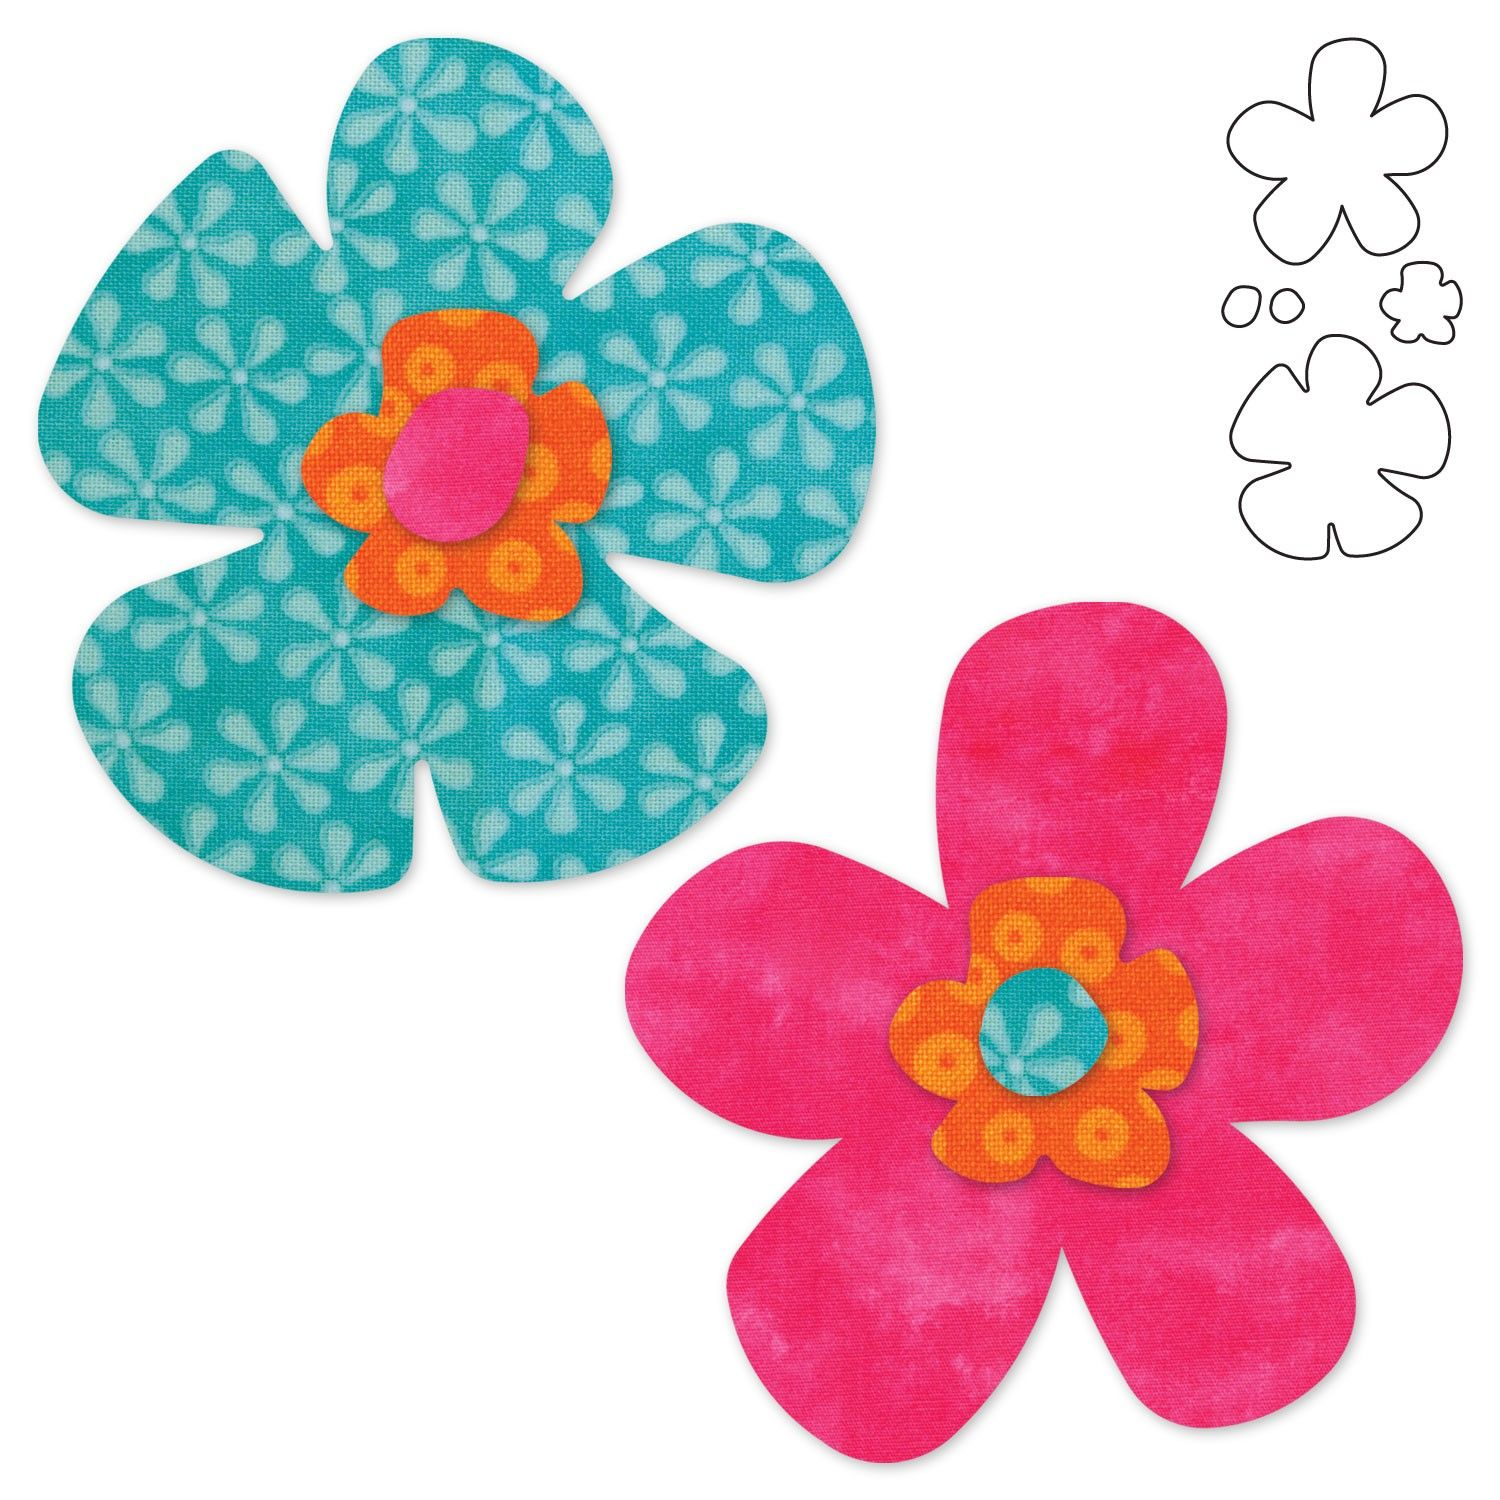 FUNKY FLOWERS STENCIL FLOWER SHAPES CRAFT ART TEMPLATE PATTERN PAINT NEW 8 x10